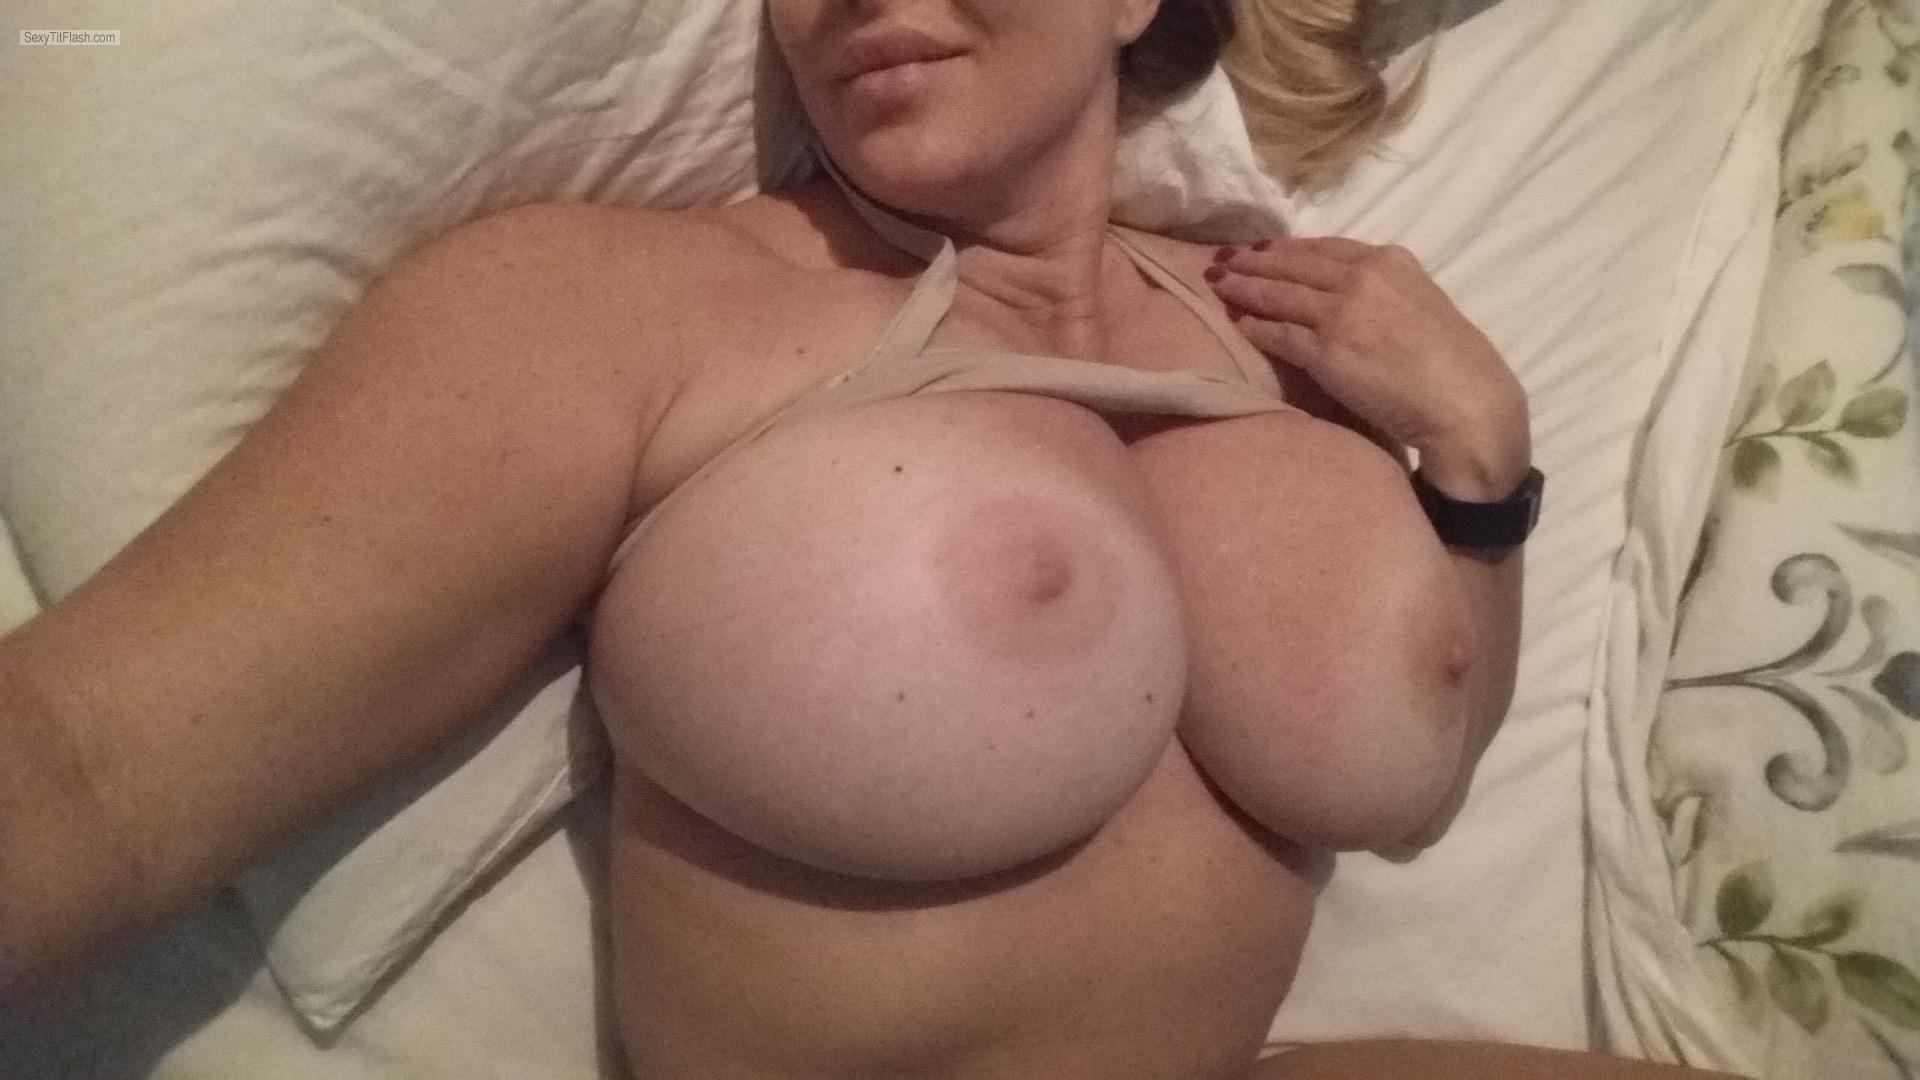 Tit Flash: My Tanlined Very Big Tits (Selfie) - Topless Under Girl from United States